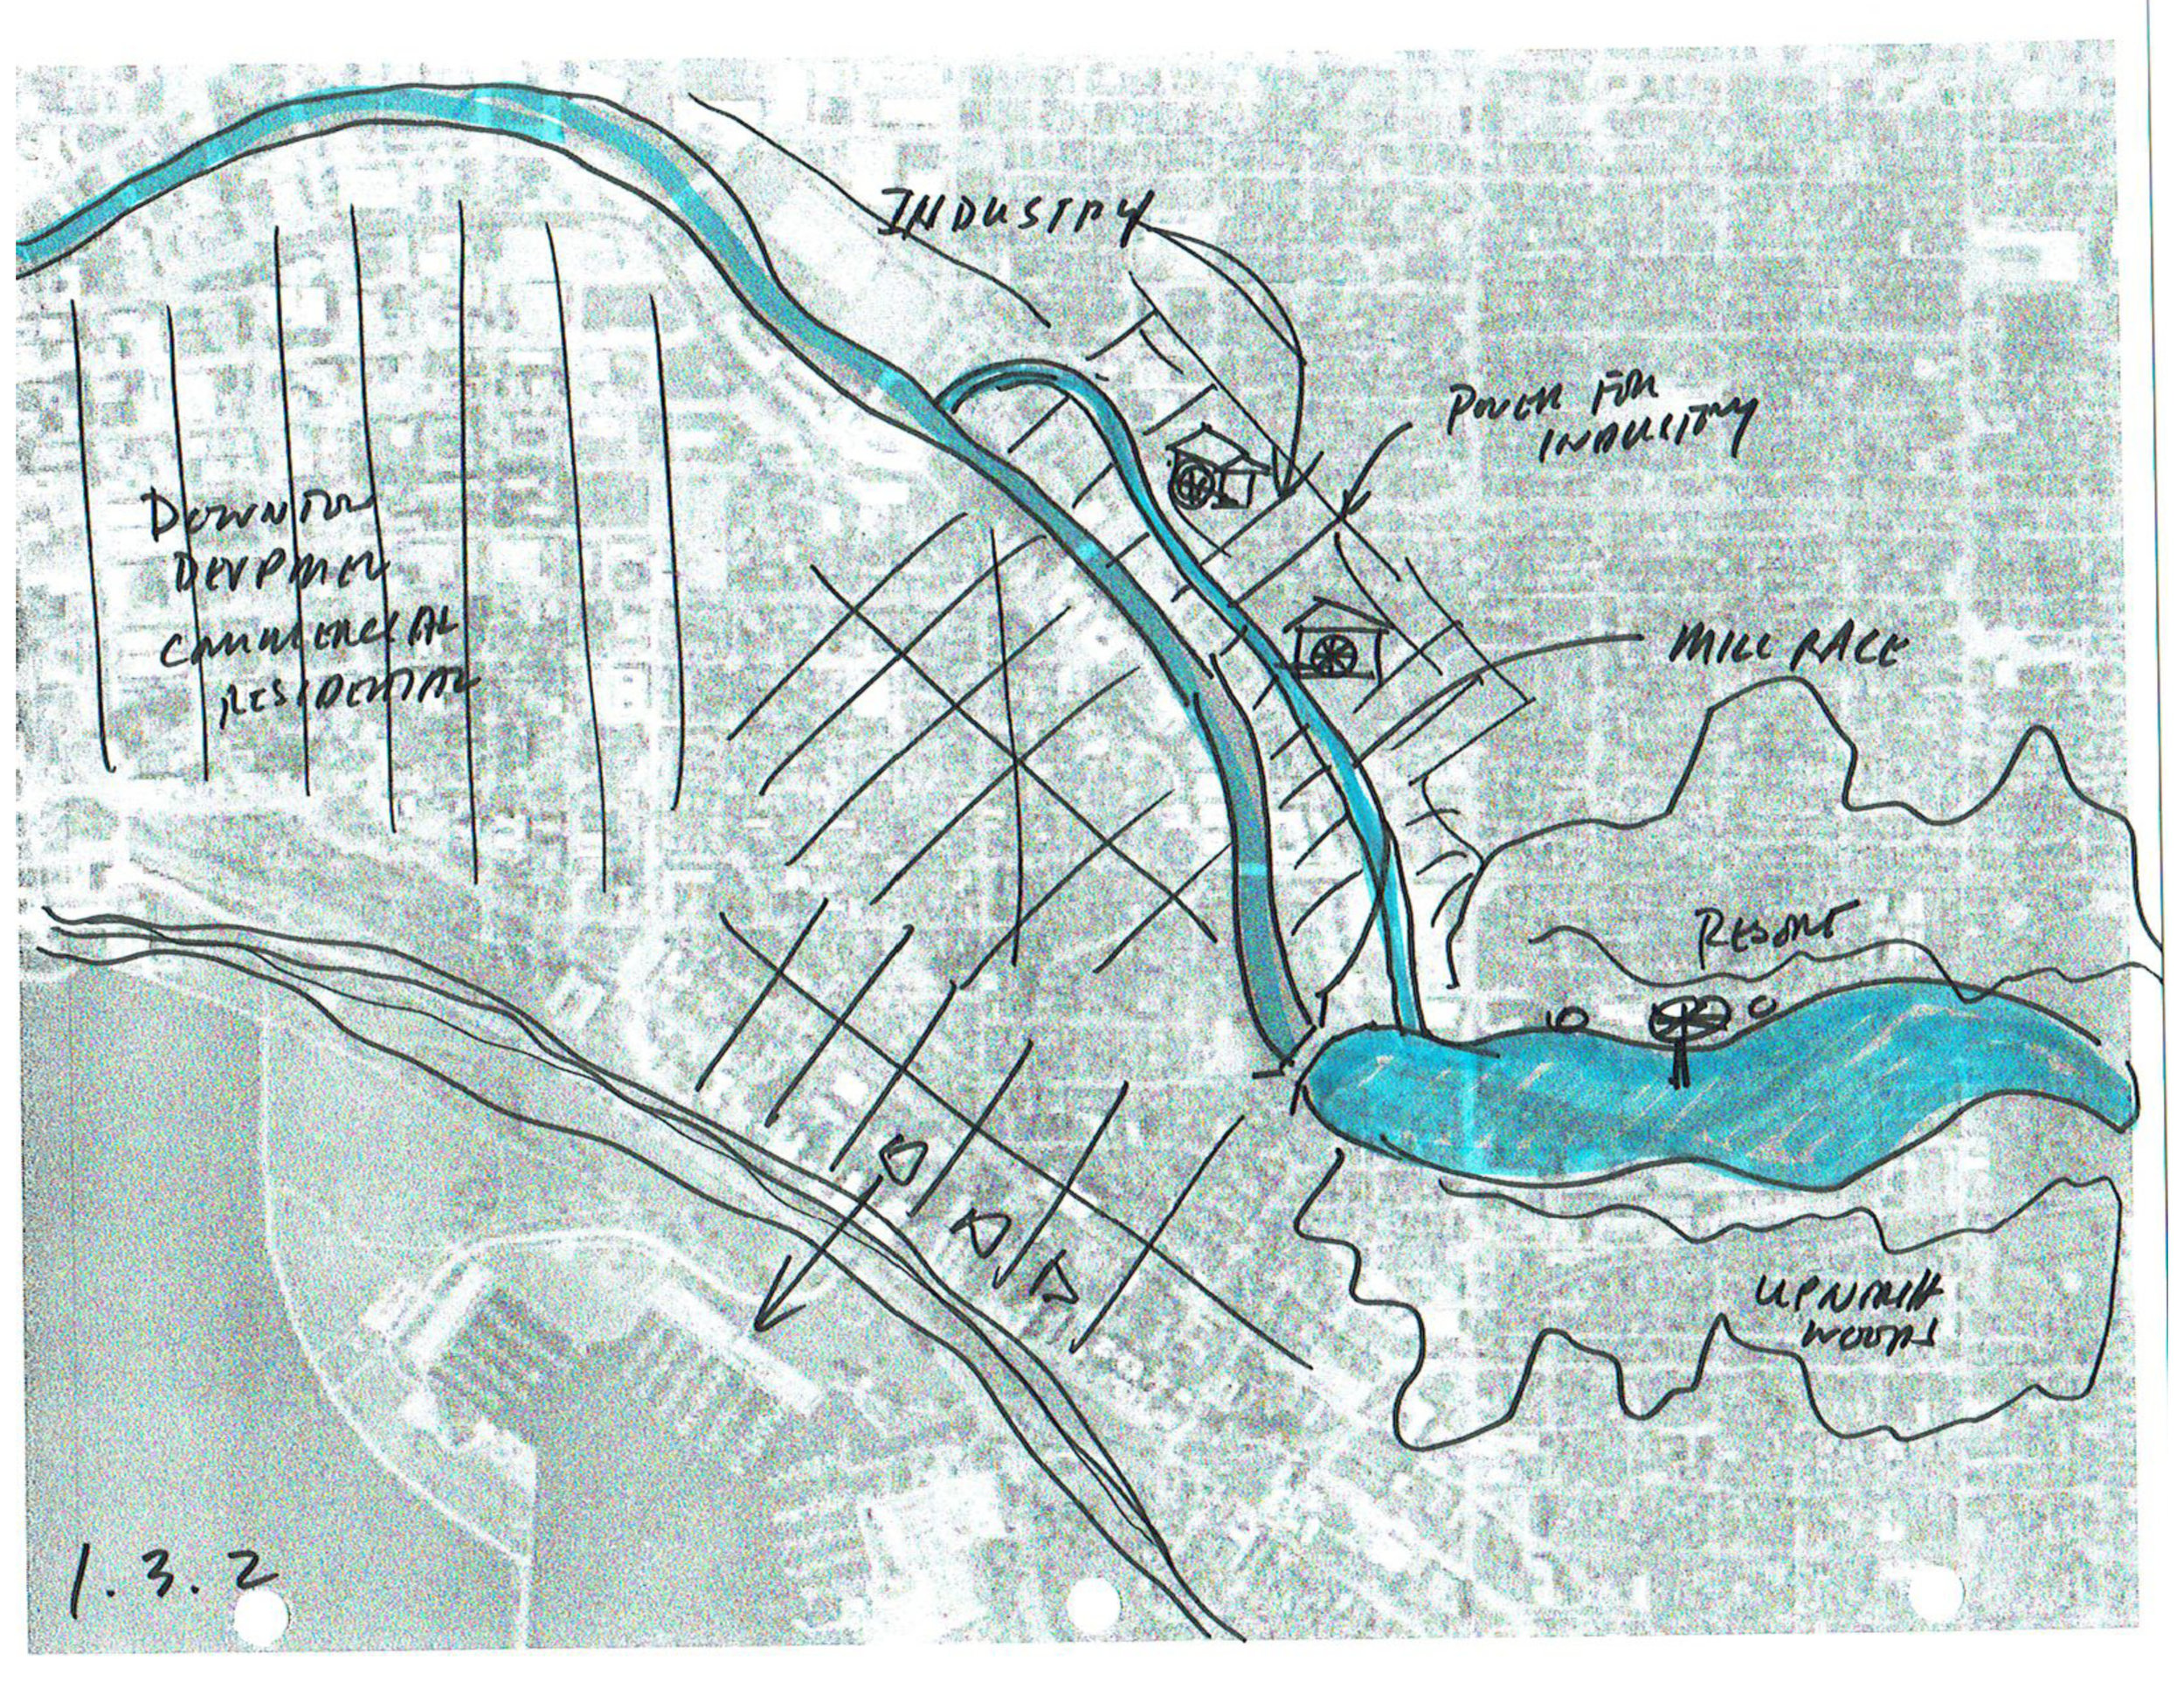 Early concept sketch of Milwaukee River history.